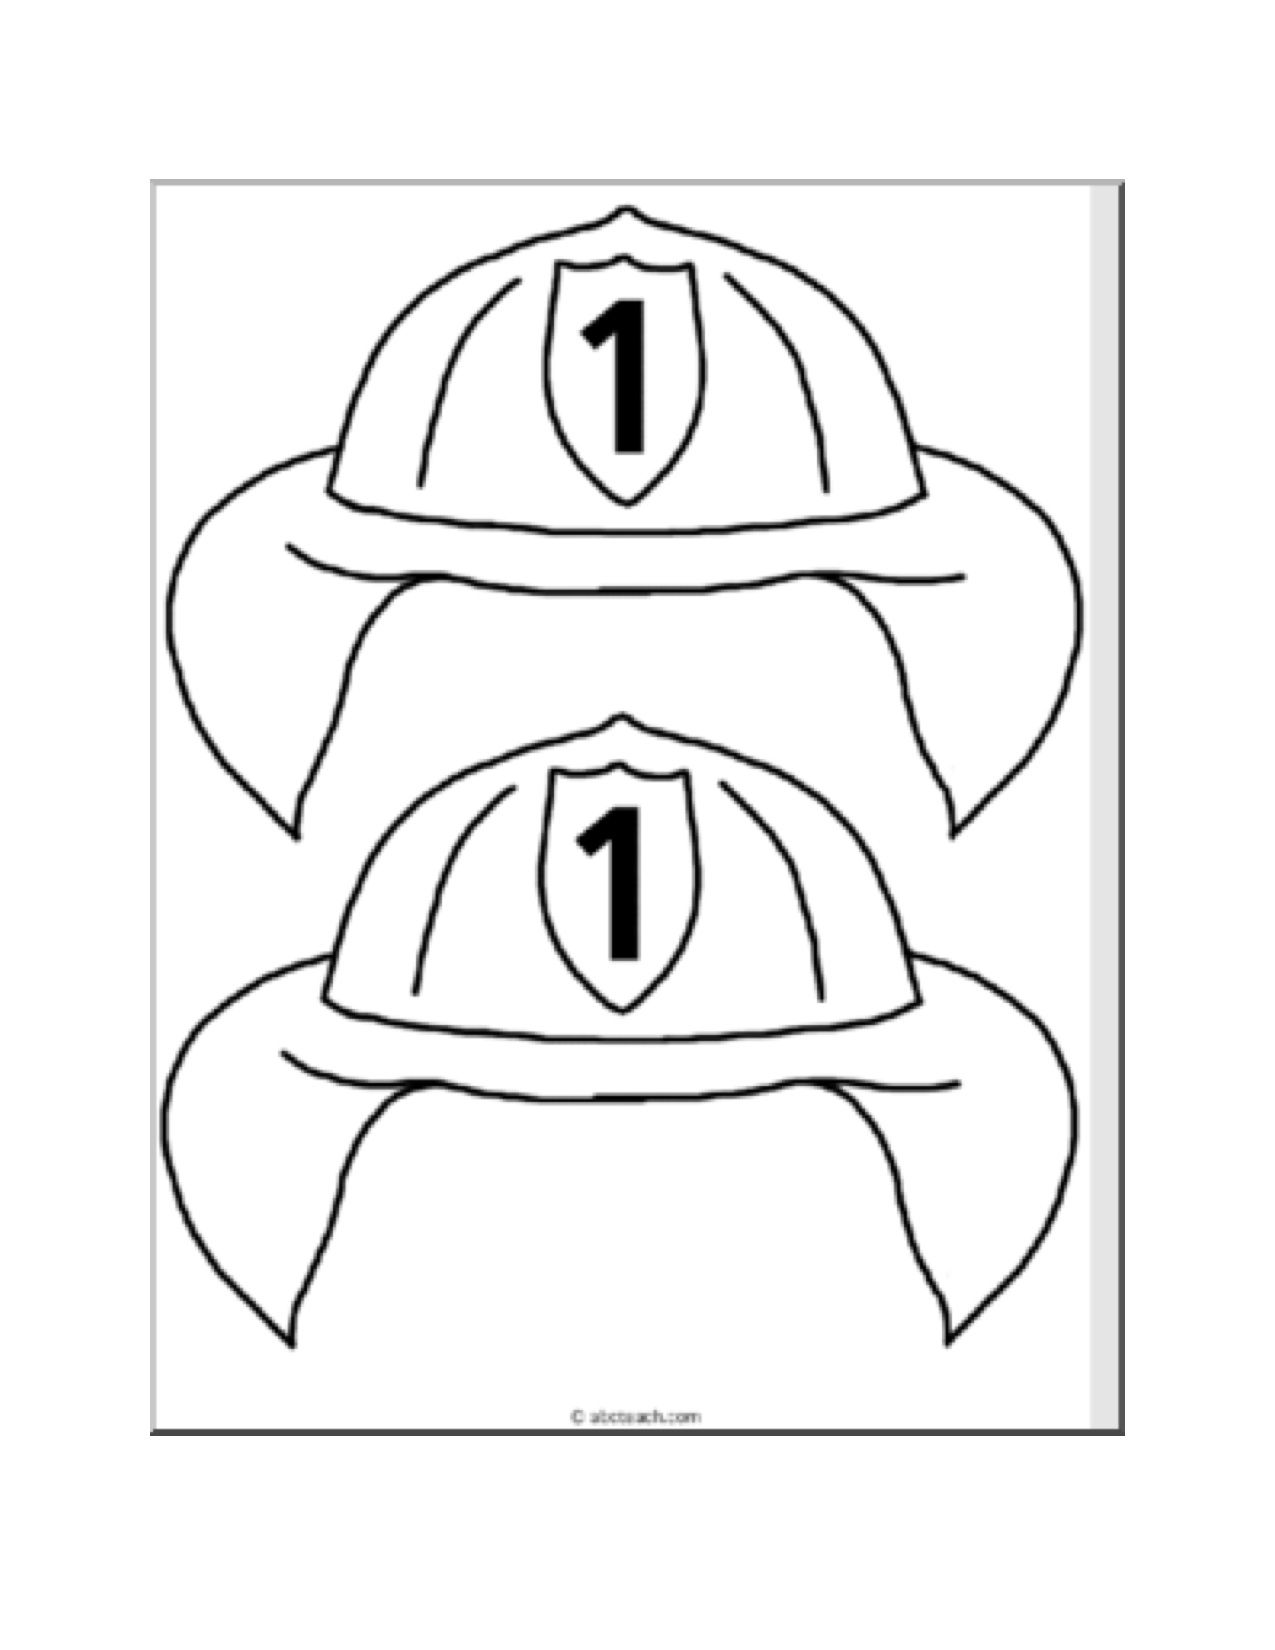 coloring pages of fire hats - photo#22